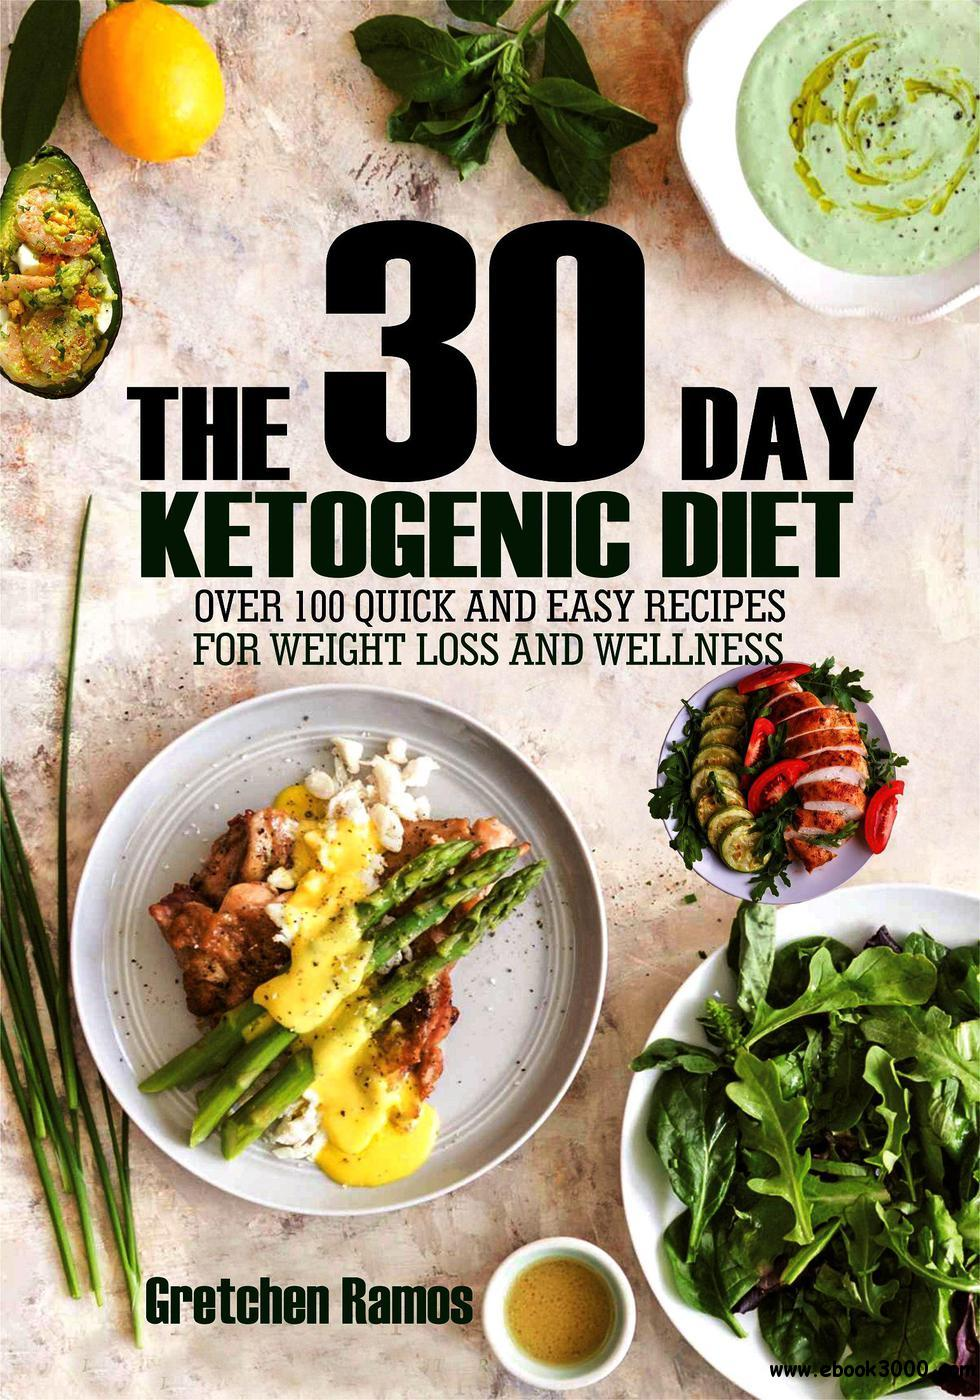 Ketogenic Diet: Indian Vegetarian Keto Diet Plan For Quick Weight Loss